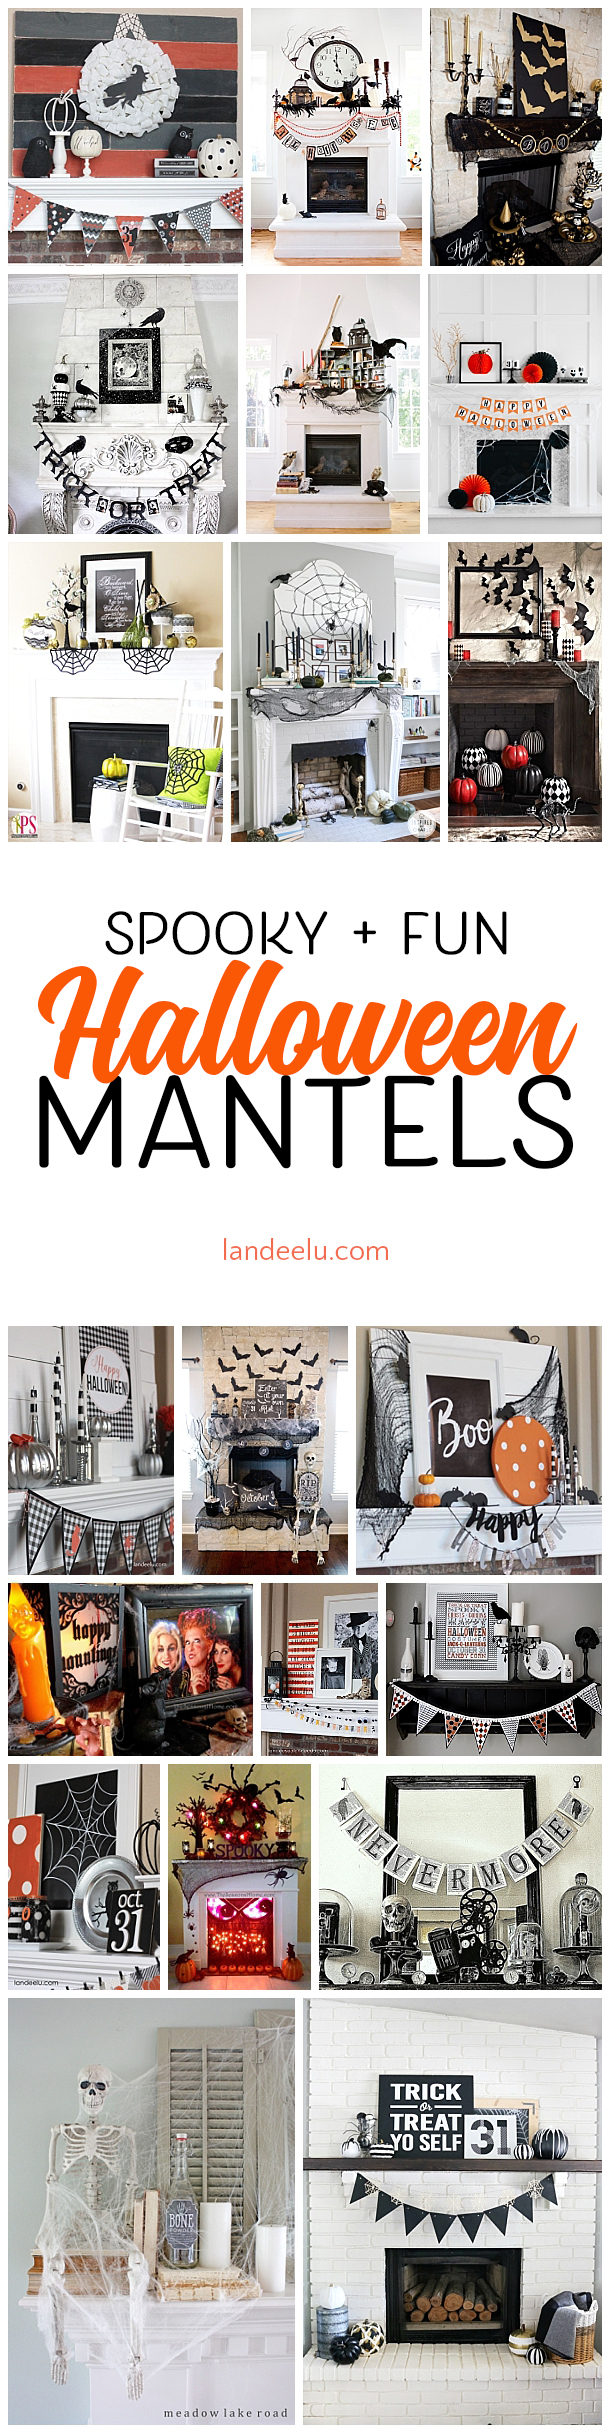 These mantel Halloween decoration ideas are to die for!!  Love every one and especially the 6th one!